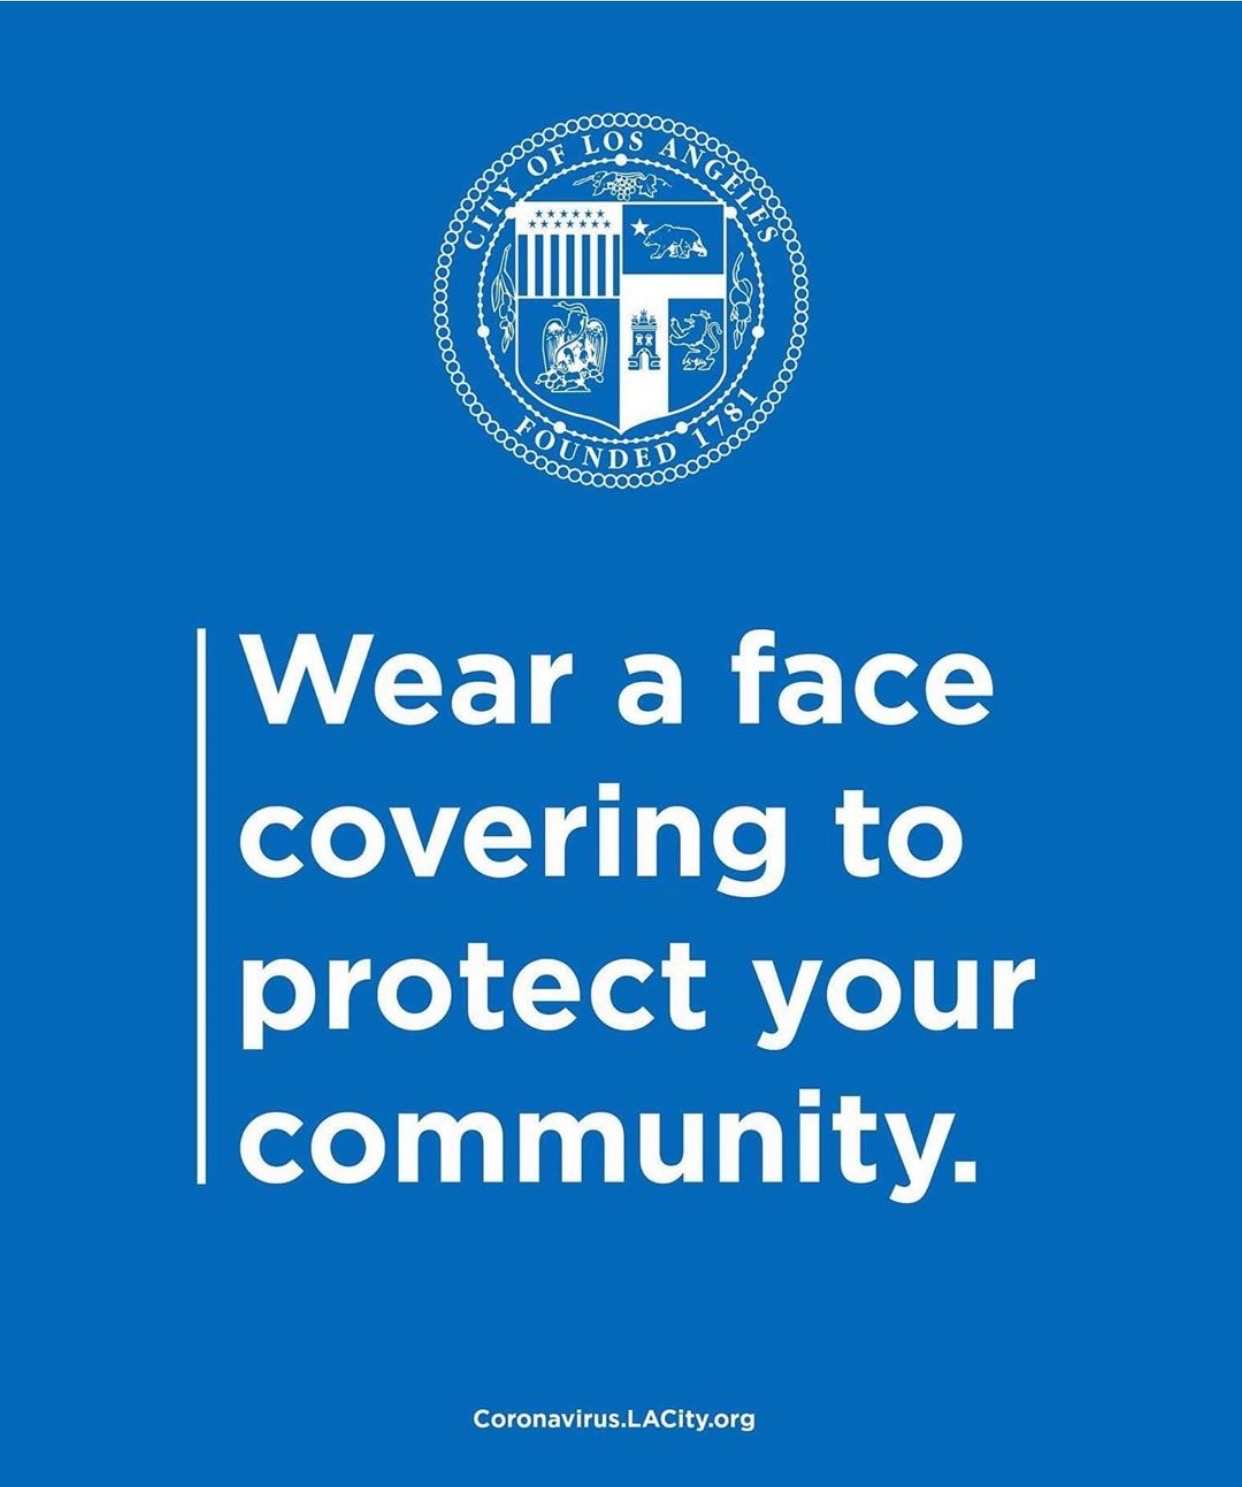 Wear a Face Covering to Protect Your Community ENGLISH 6-19-2020